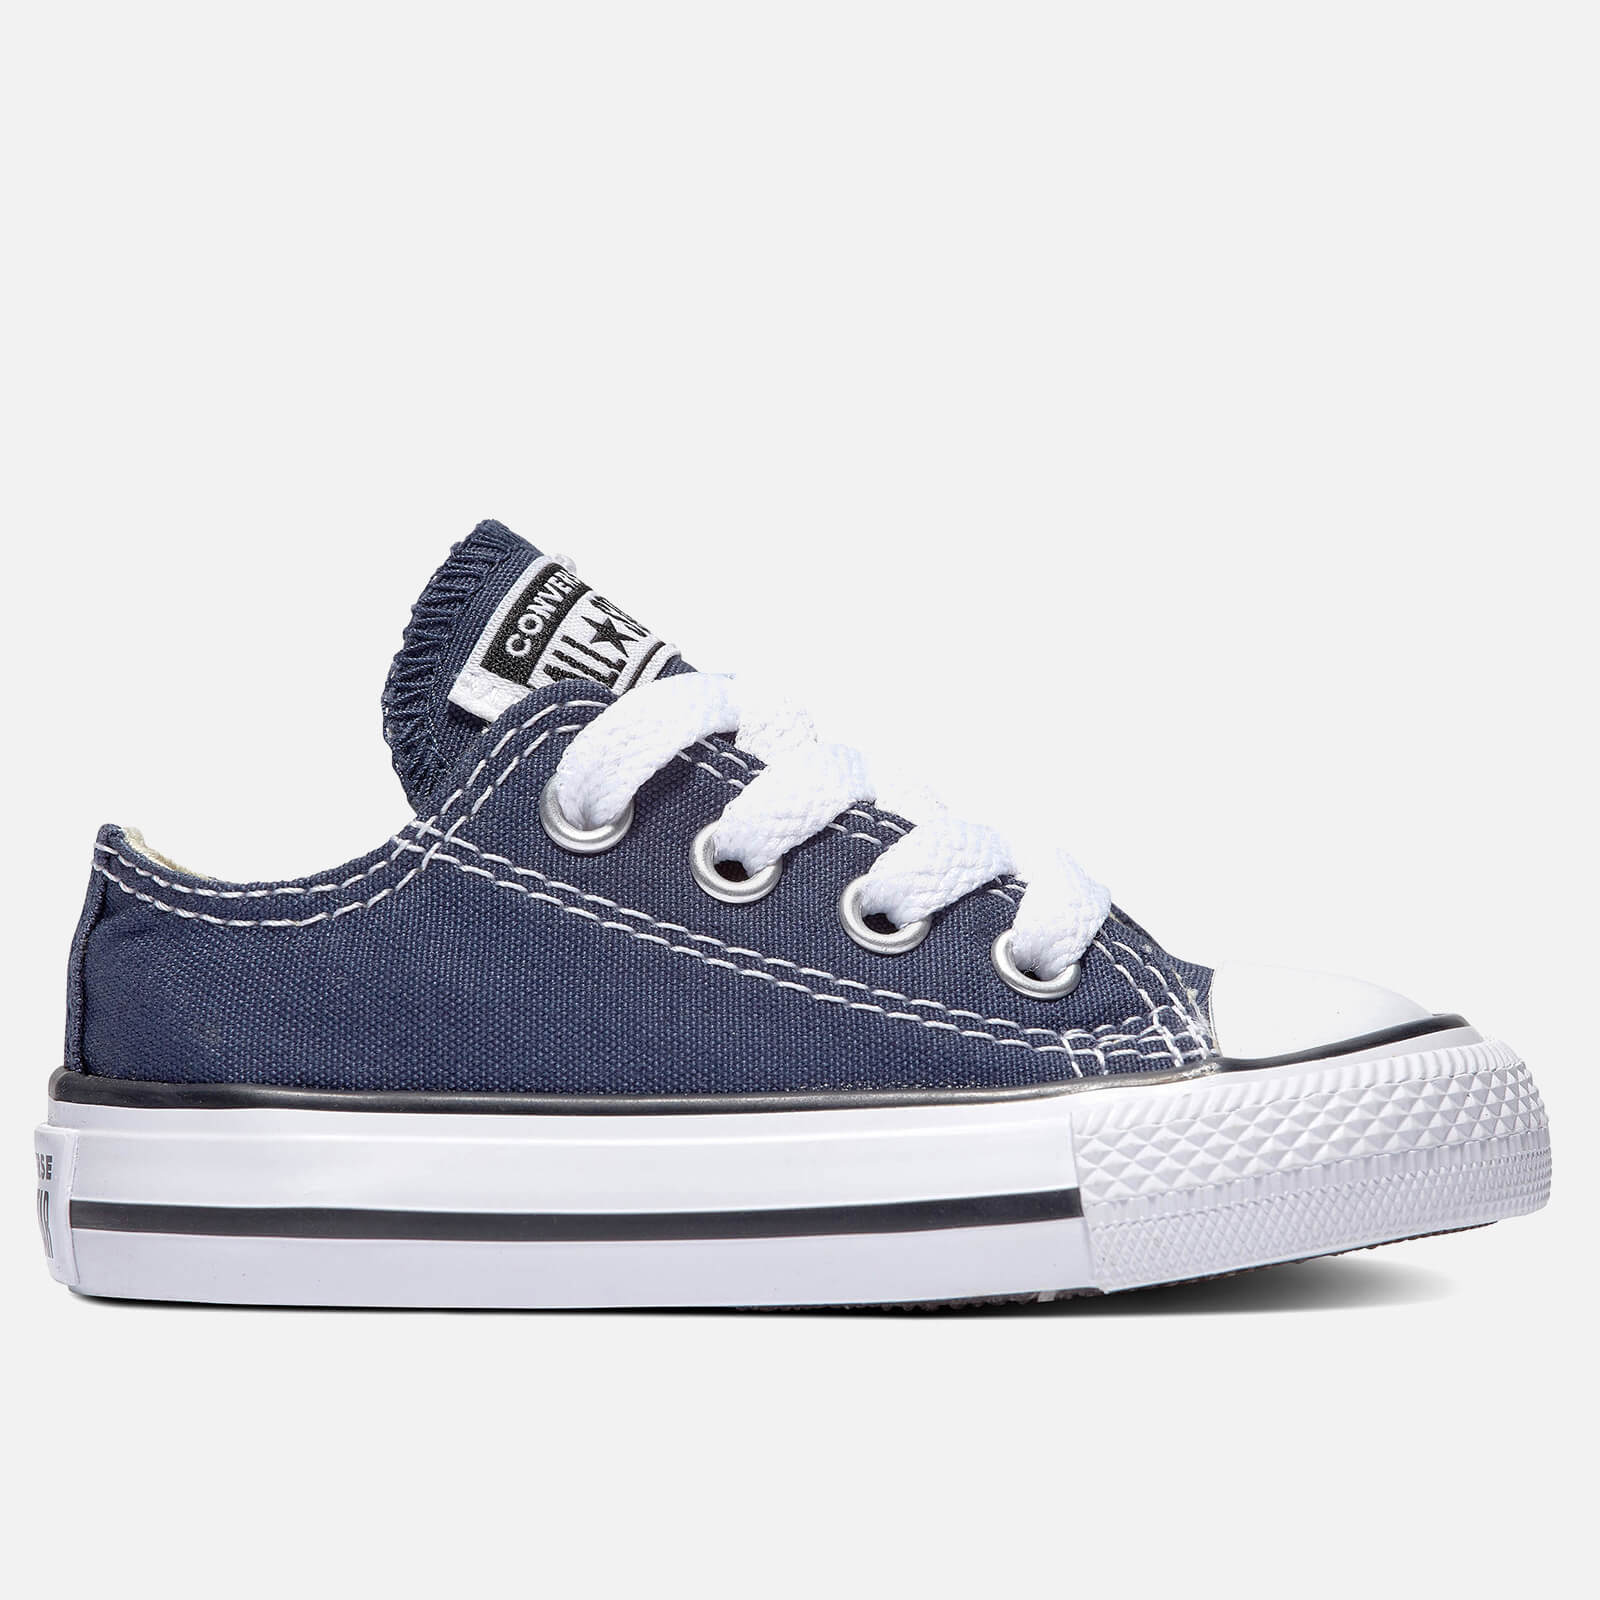 Converse Toddlers Chuck Taylor All Star Ox Trainers Navy Uk 7 Toddler